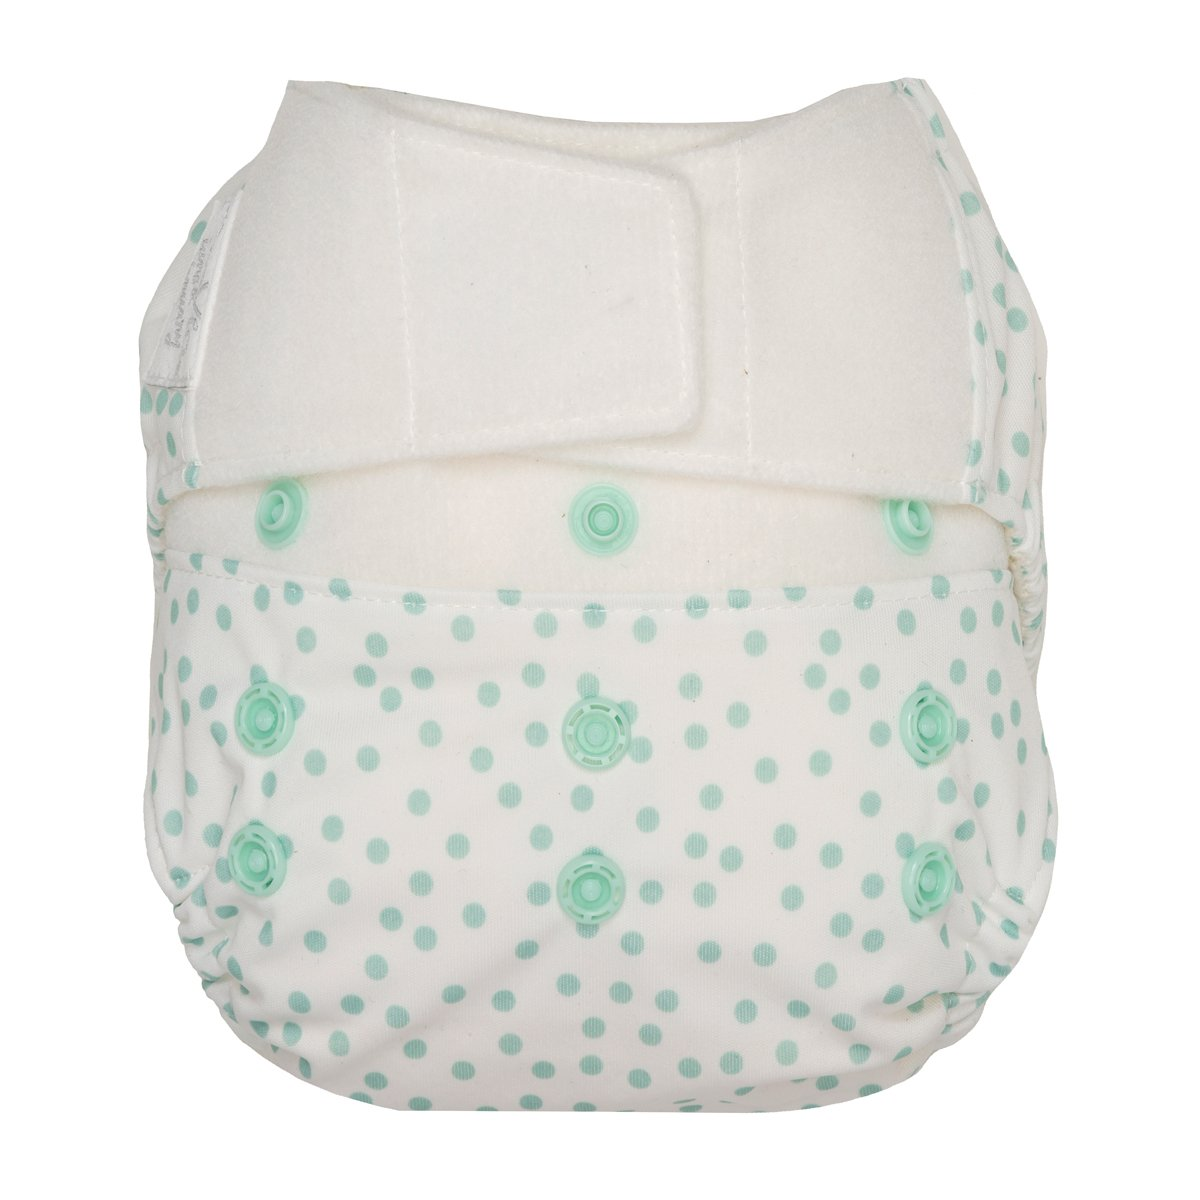 GroVia One Size Cloth Diaper Shell Set -  Soft Mint Dot